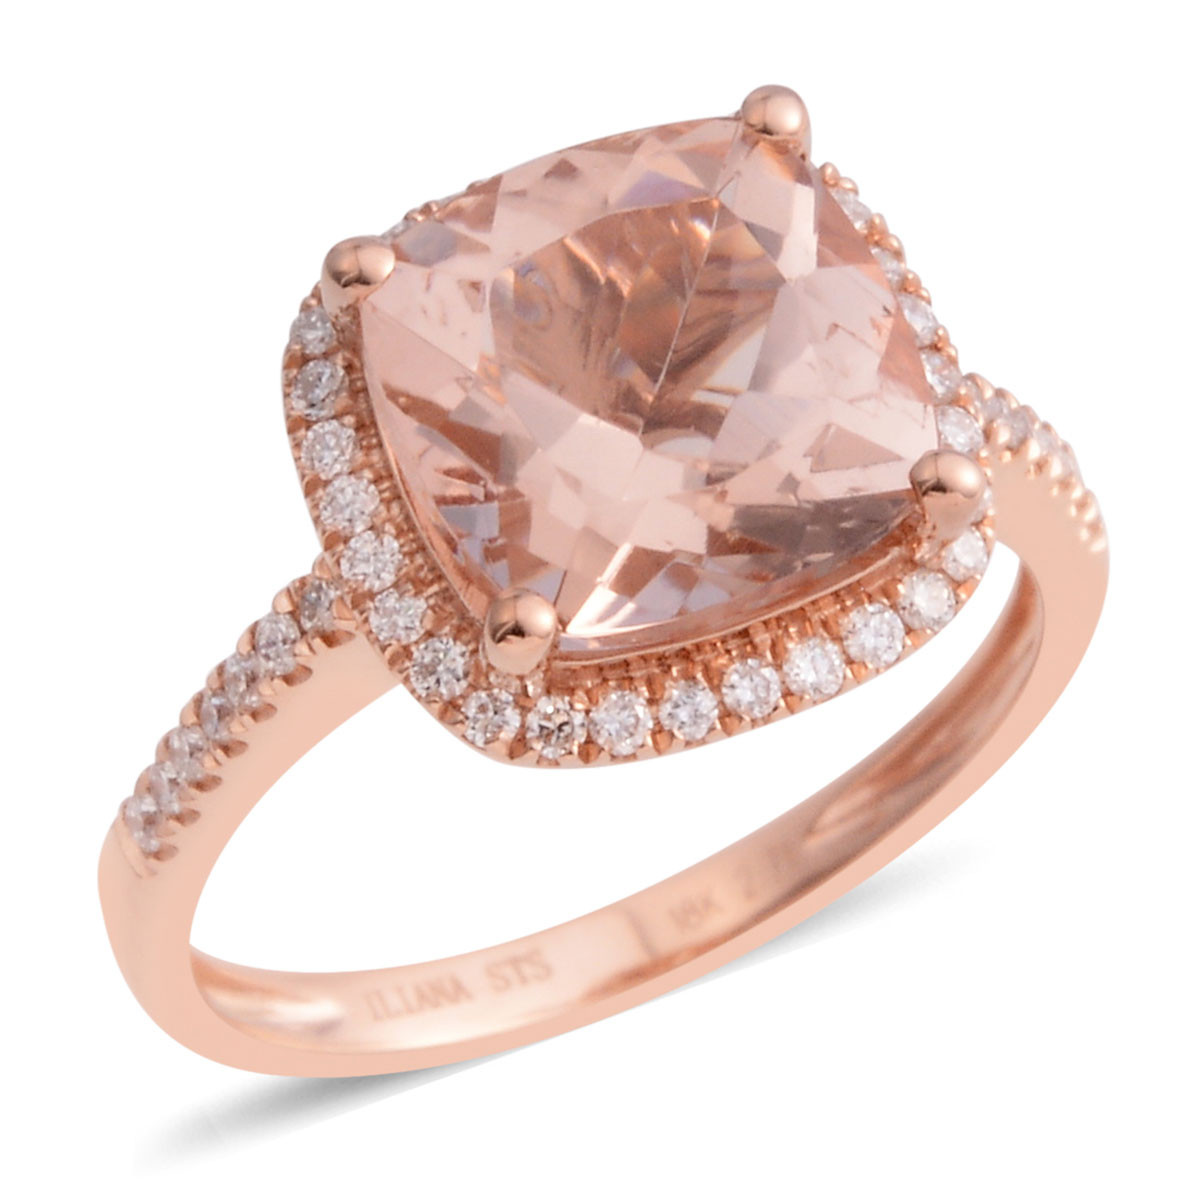 ILIANA 18K RG Marropino Morganite, Diamond Ring (Size 9.0) TDiaWt ...